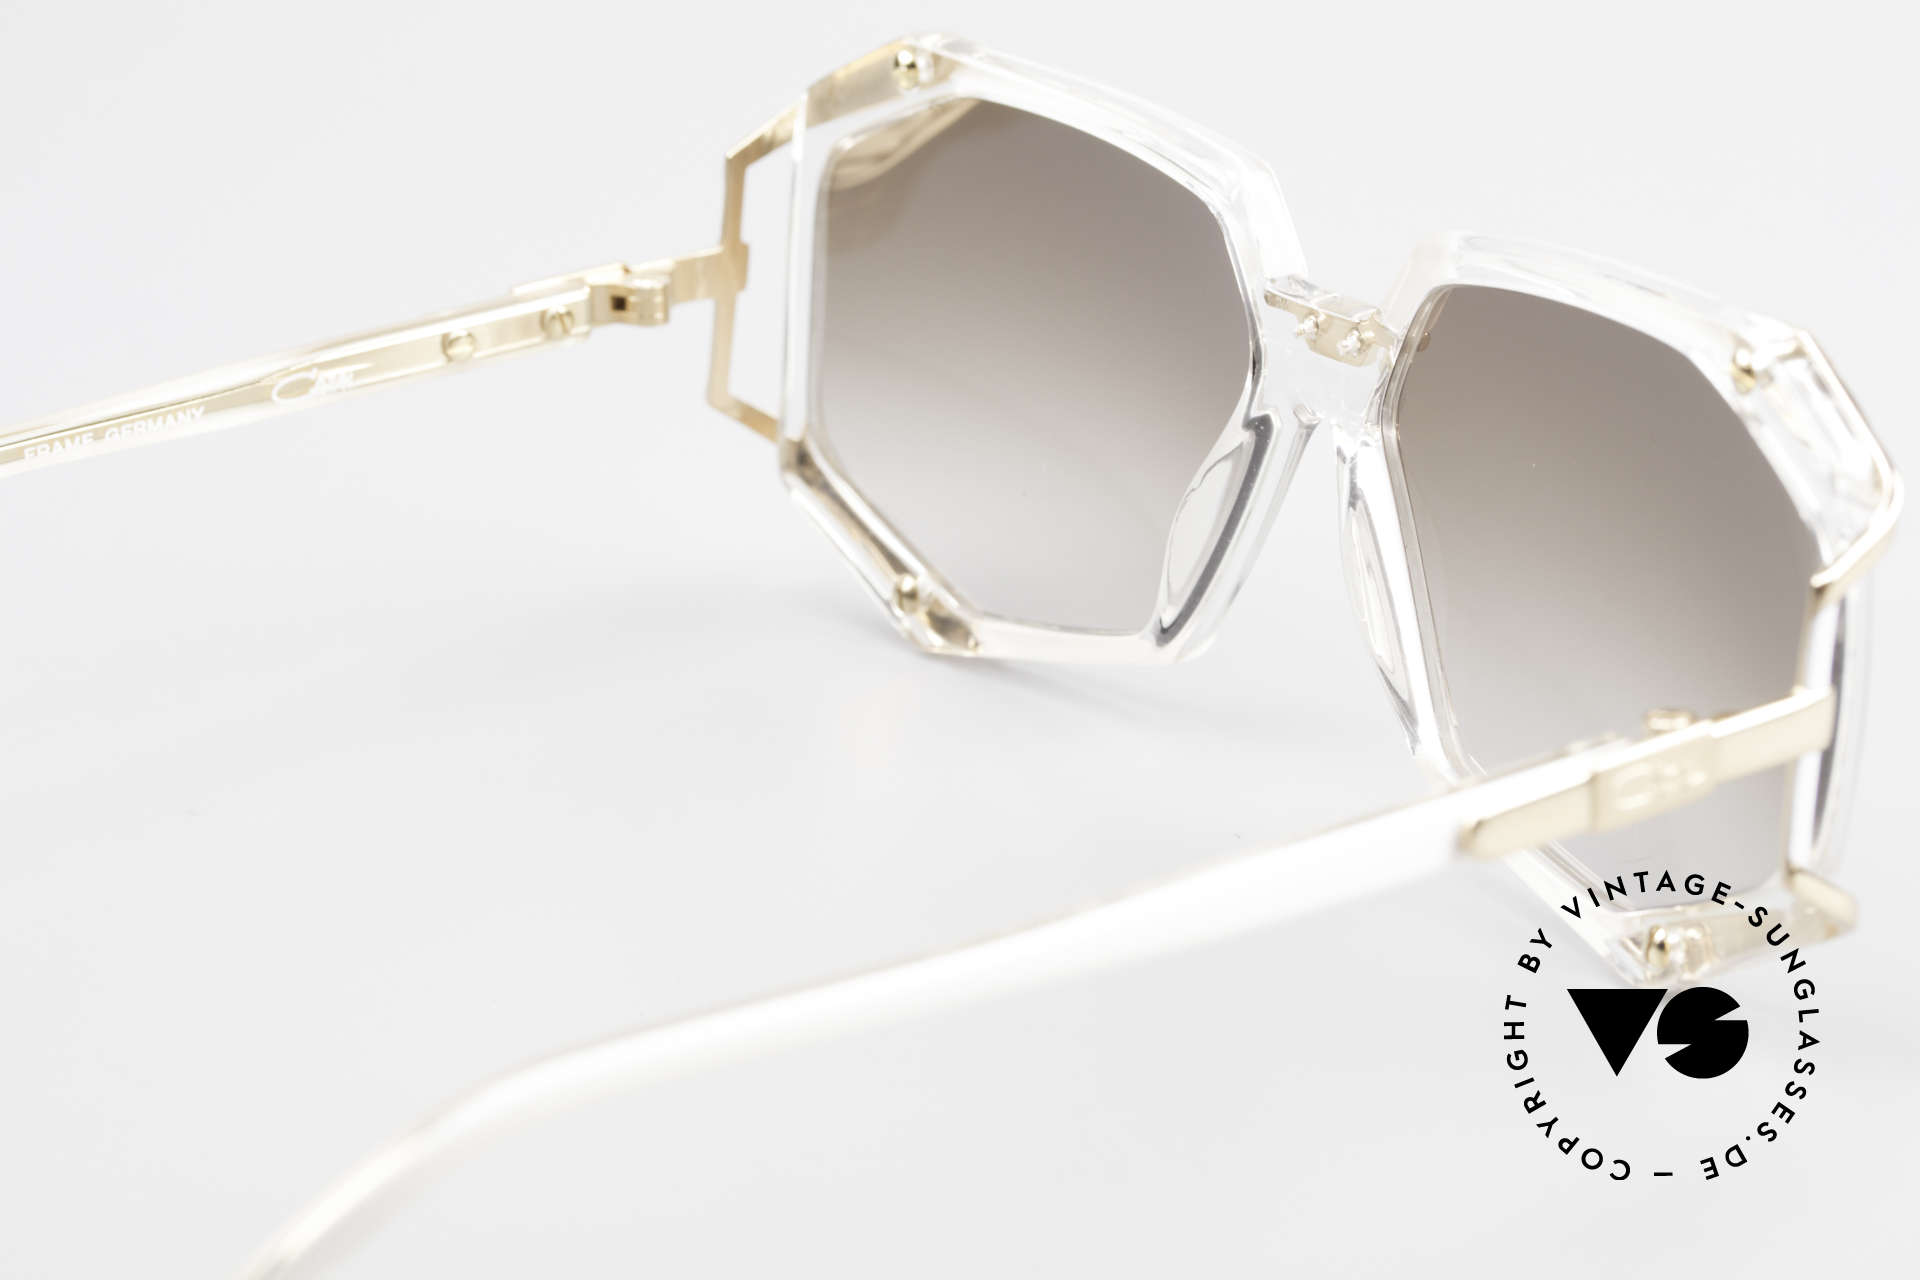 Cazal 355 Spectacular 90s Vintage Cazal, NO retro shades, but an authentic 25 years old original, Made for Women